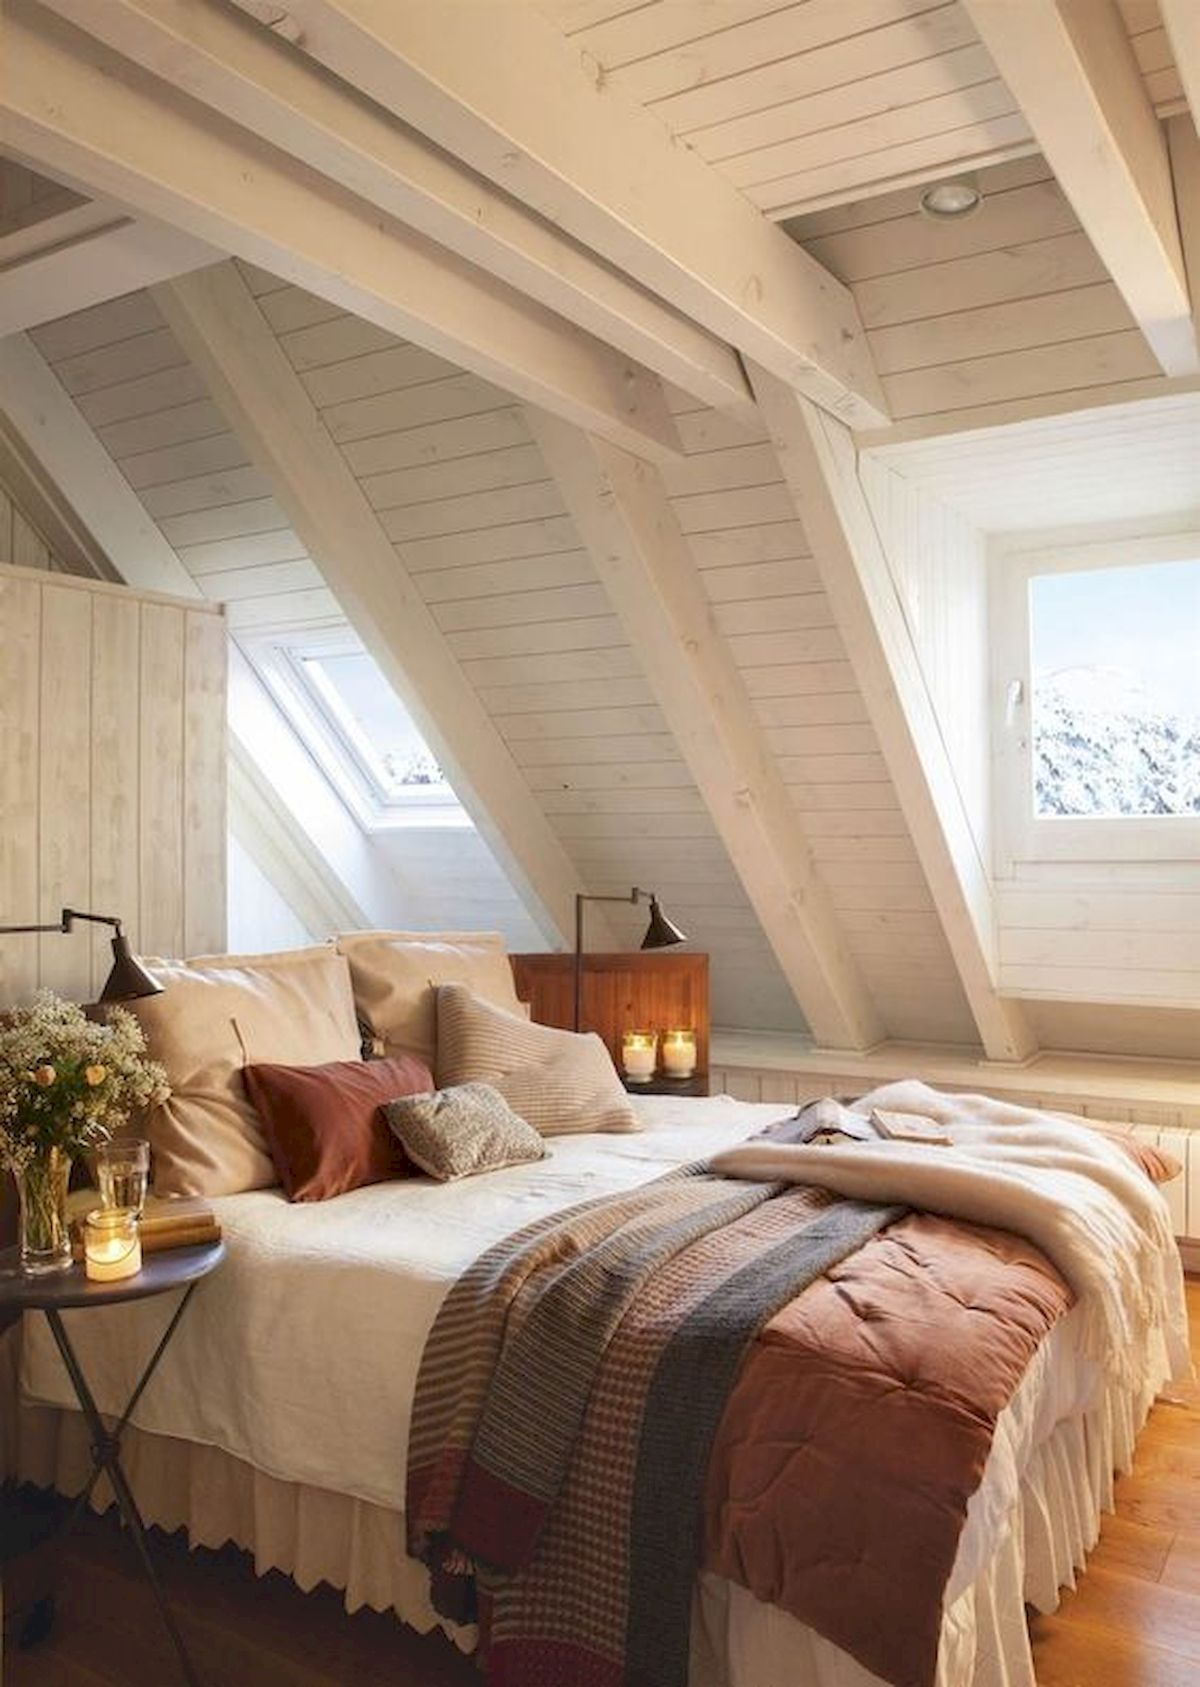 40 Awesome Attic Bedroom Design and Decorating Ideas (31)